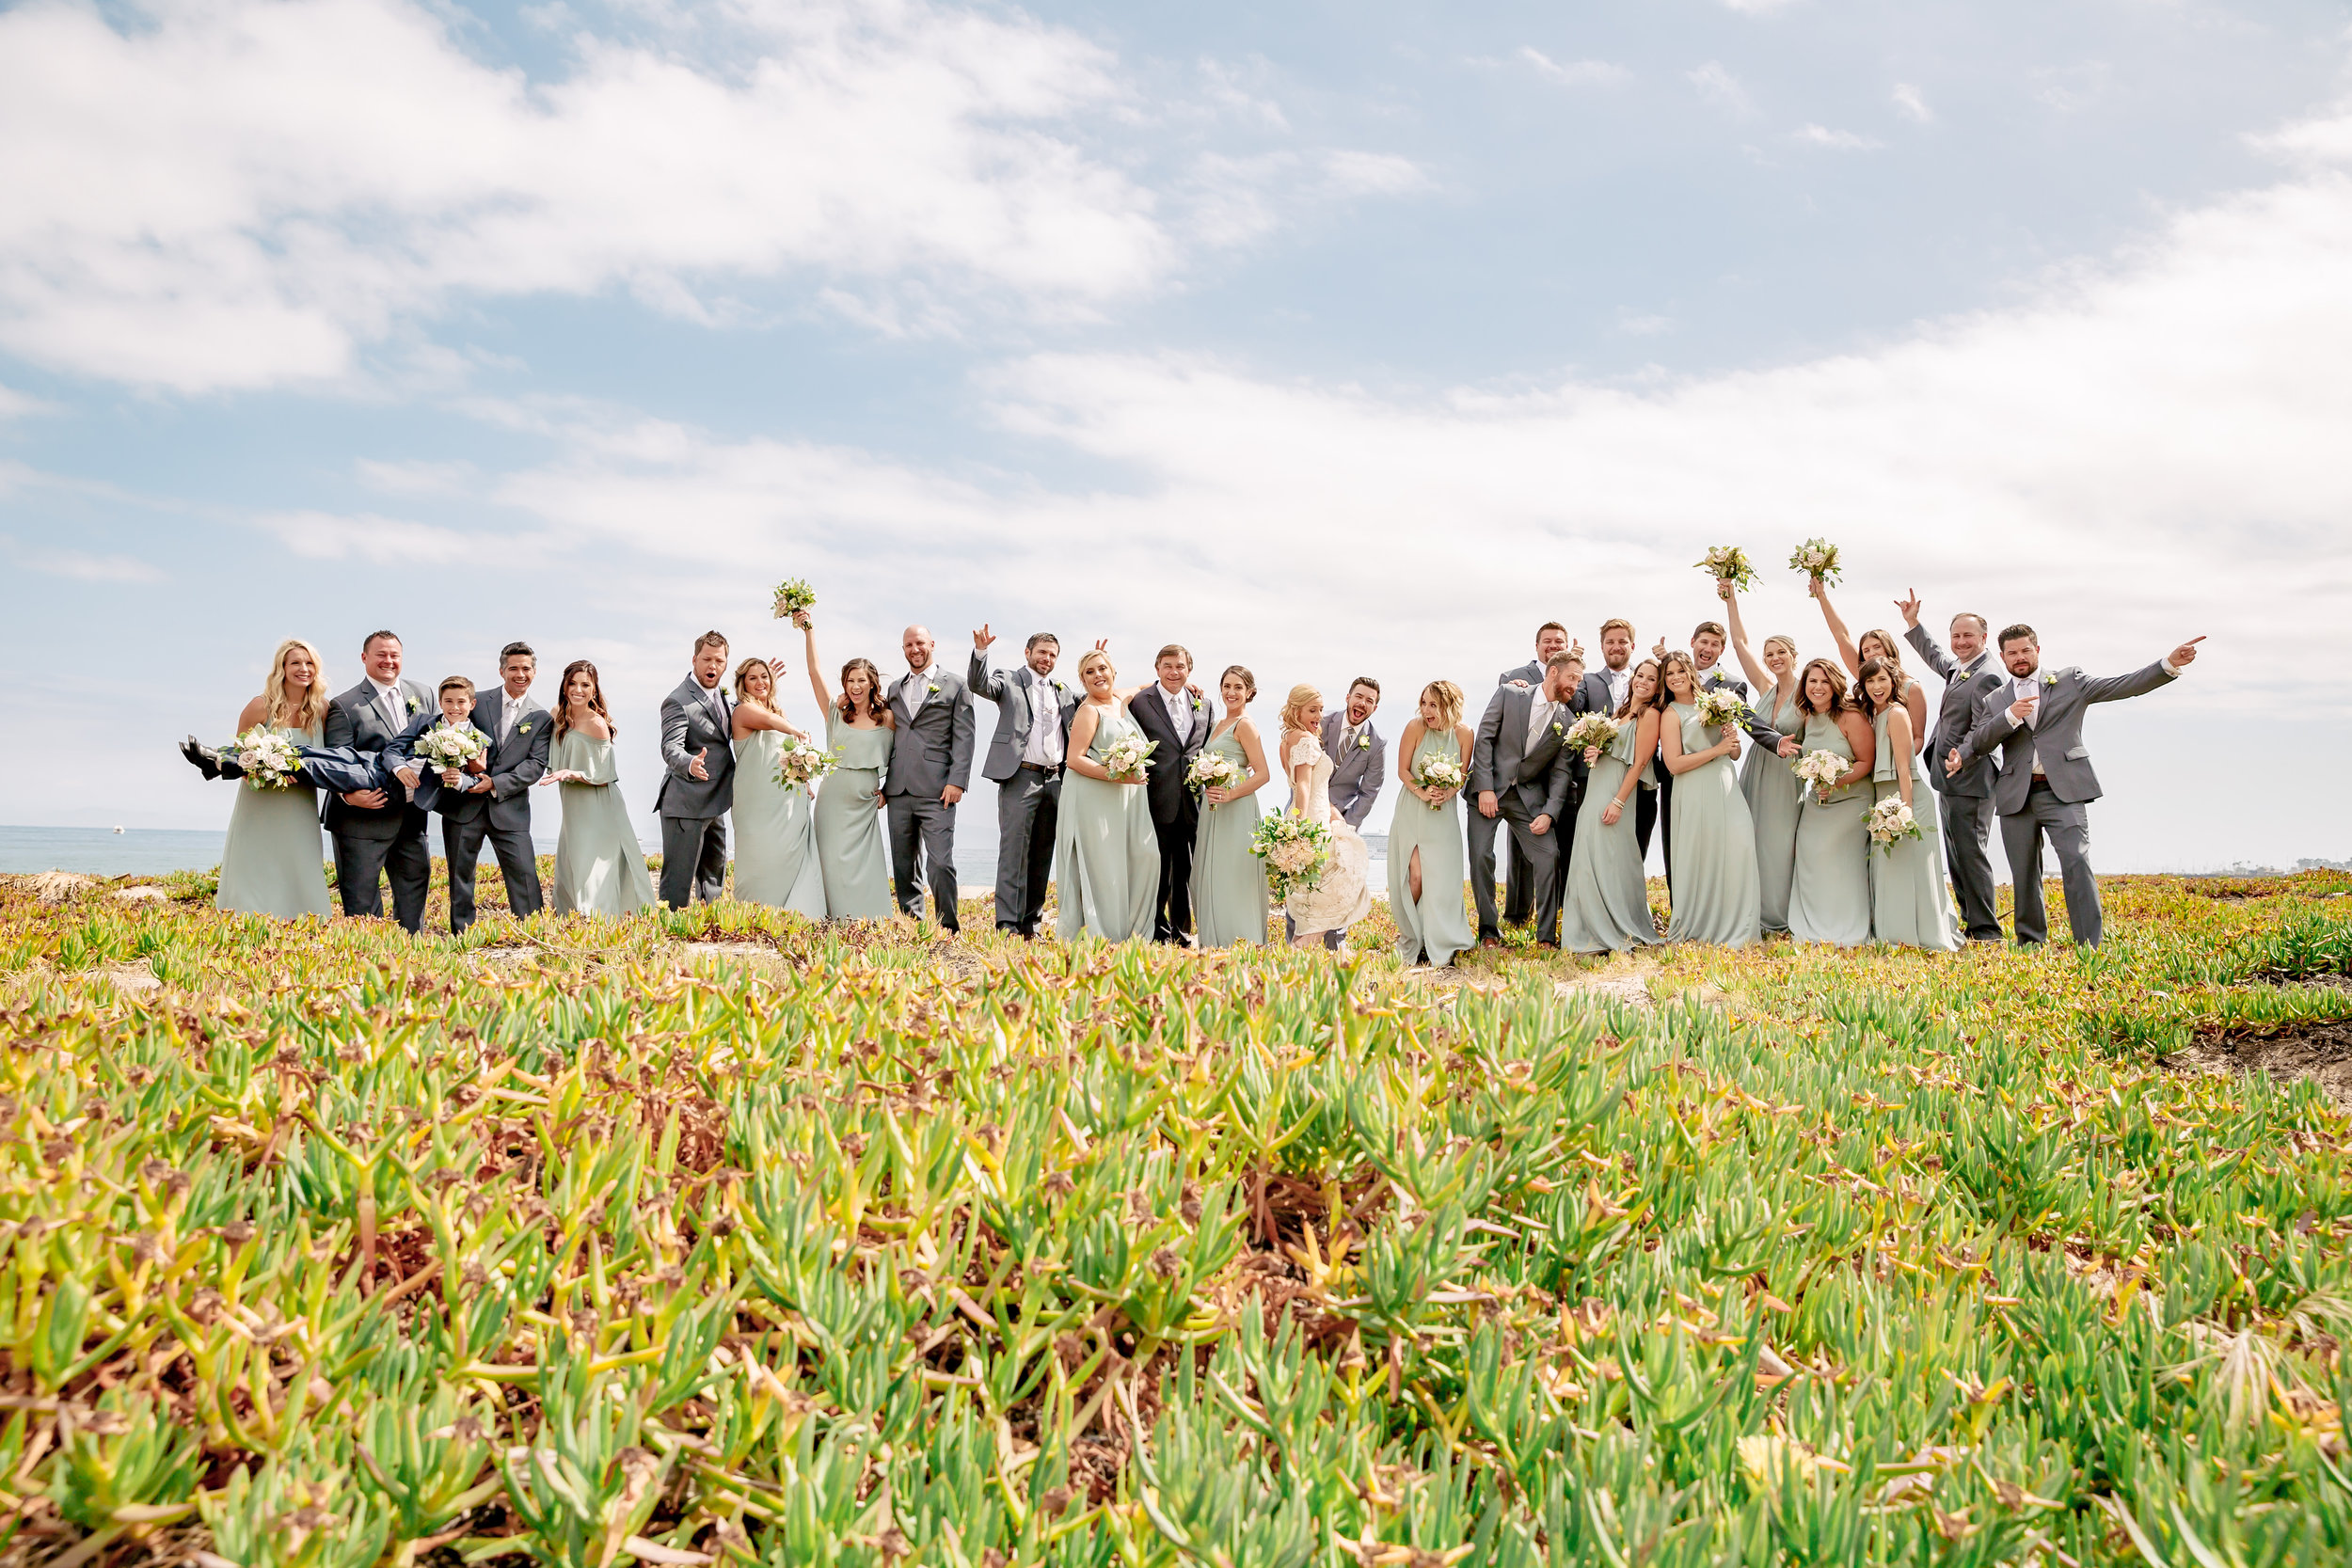 www.santabarbarawedding.com | Rewind Photography | Events by M and M | Santa Barbara Historical Museum | Bridal Party